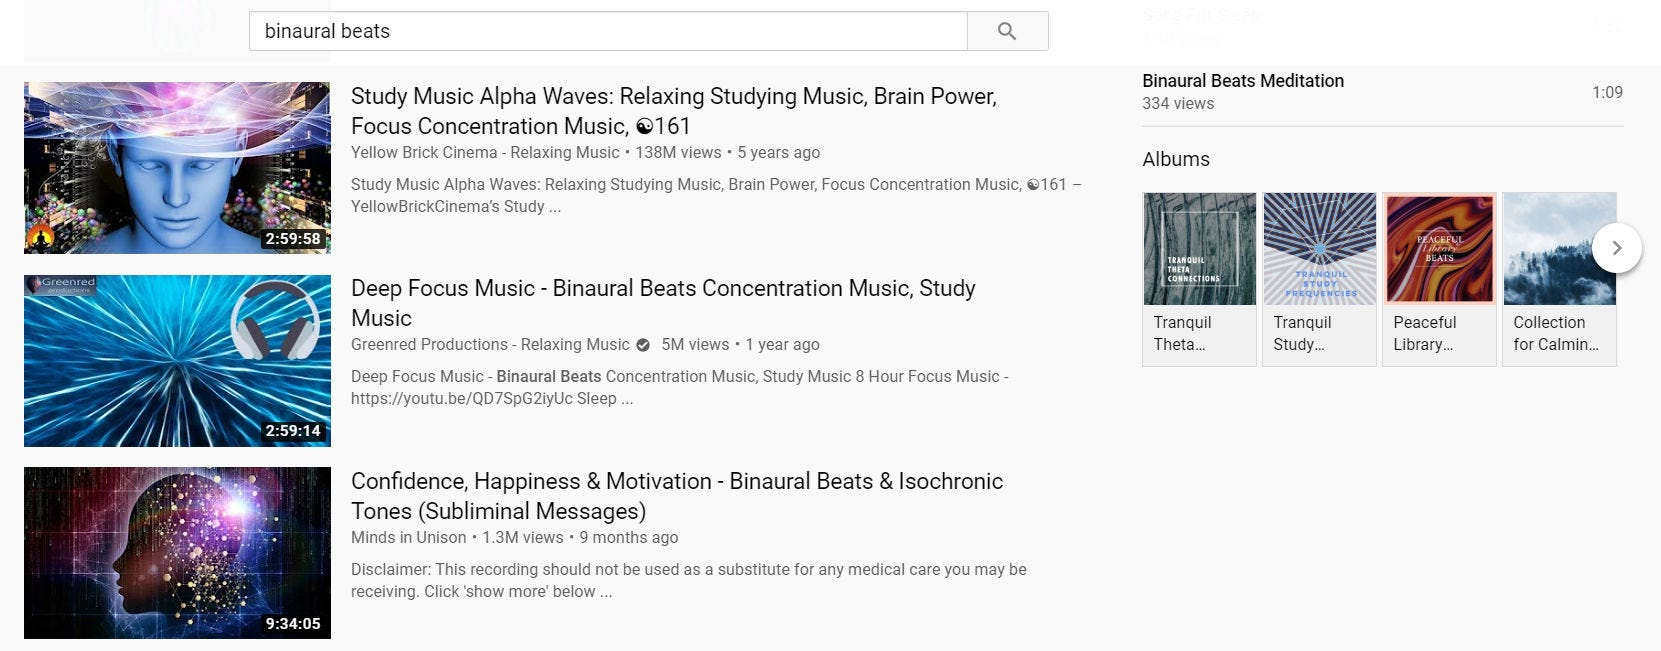 "Search results for ""Binaural Beats"" on YouTube."